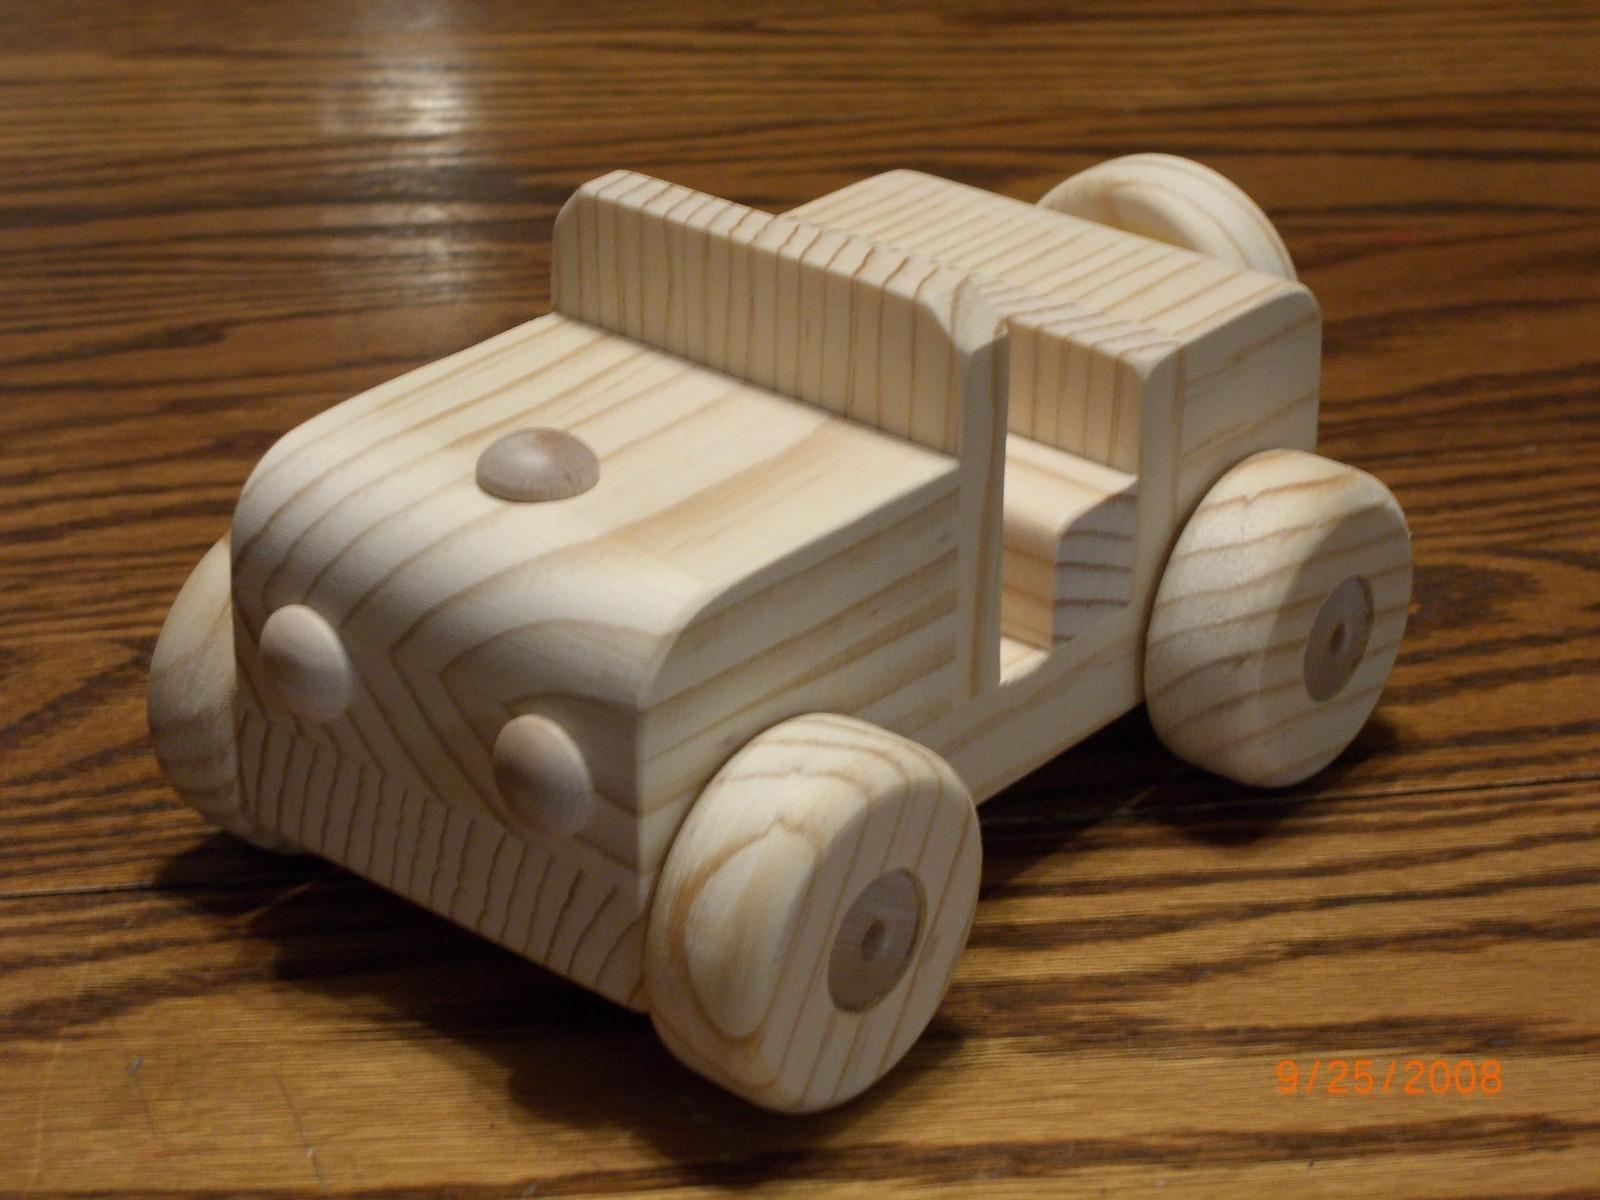 Jeep All Natural Wooden Toy Waldorf Mikebtoys Etsy